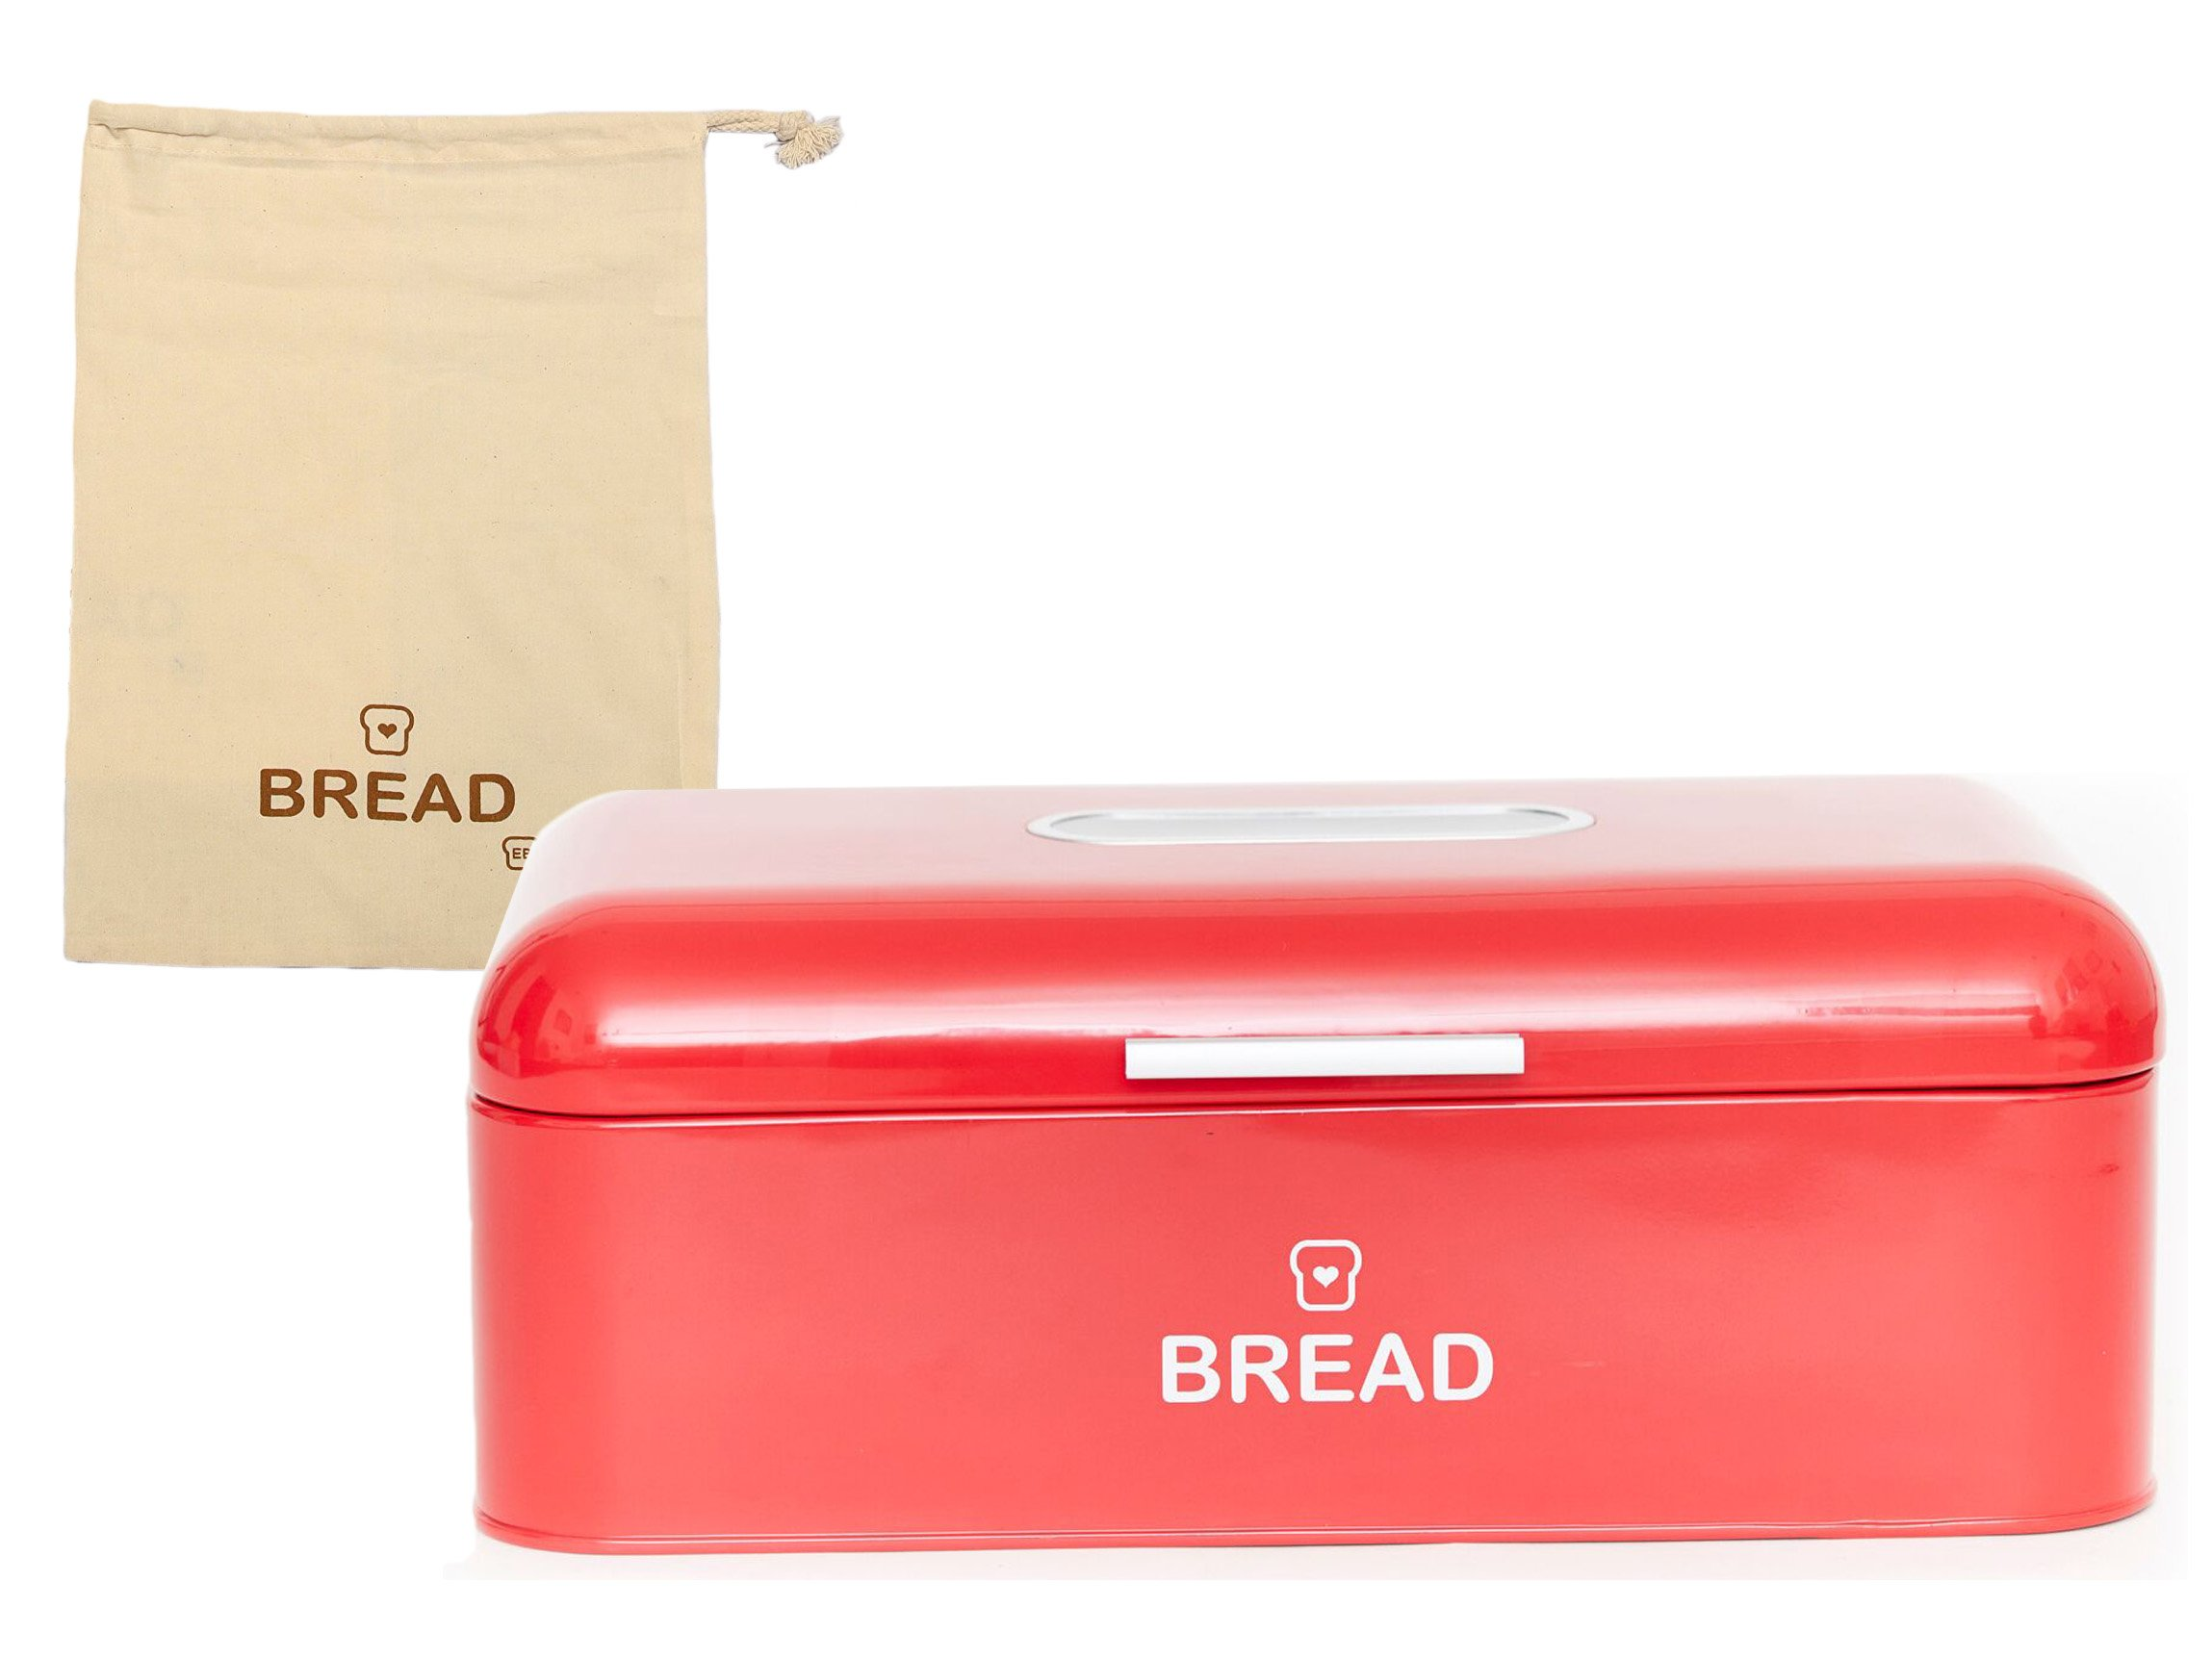 Vintage Bread Box For Kitchen Stainless Steel Metal 16.5'' x 9'' x 6.5'' with viewing window + FREE Bread Bag; Large Bread, Loaves, Pasgtires Bin storage (Red)